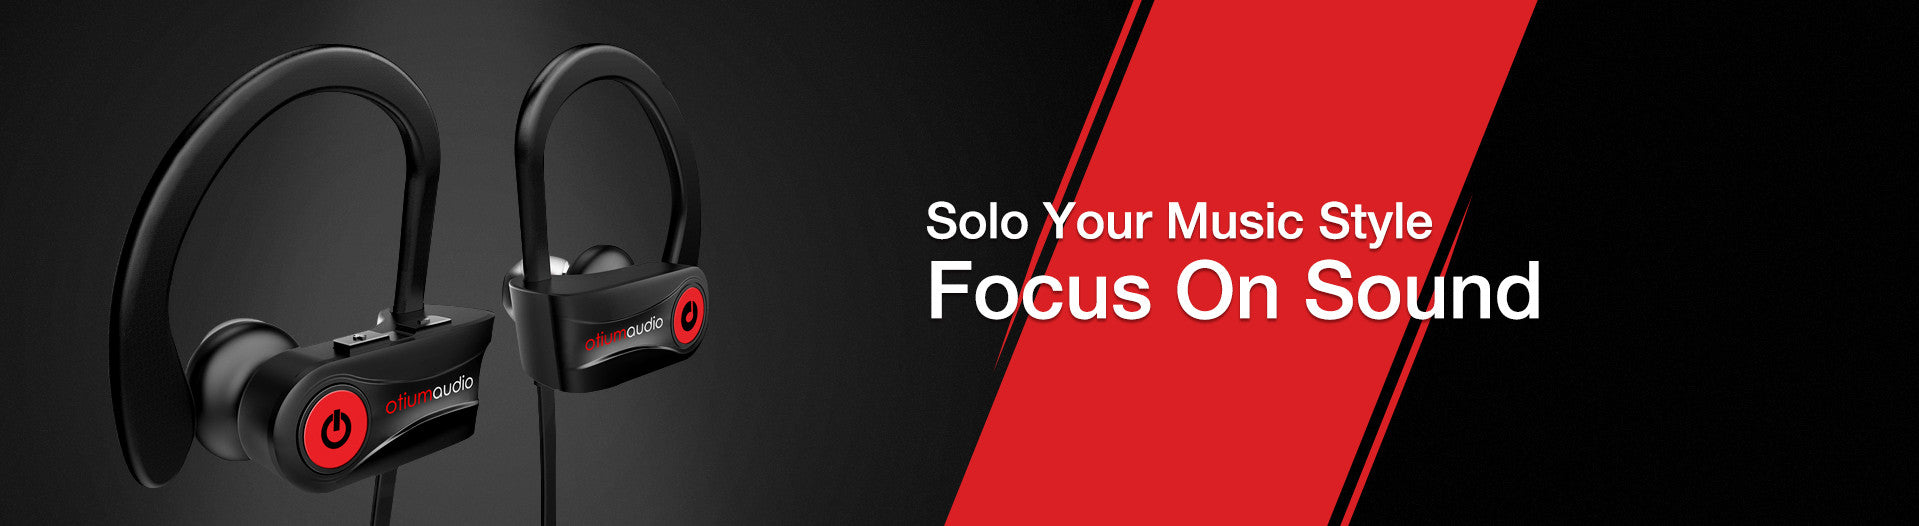 Otium solo bluetooth headphone